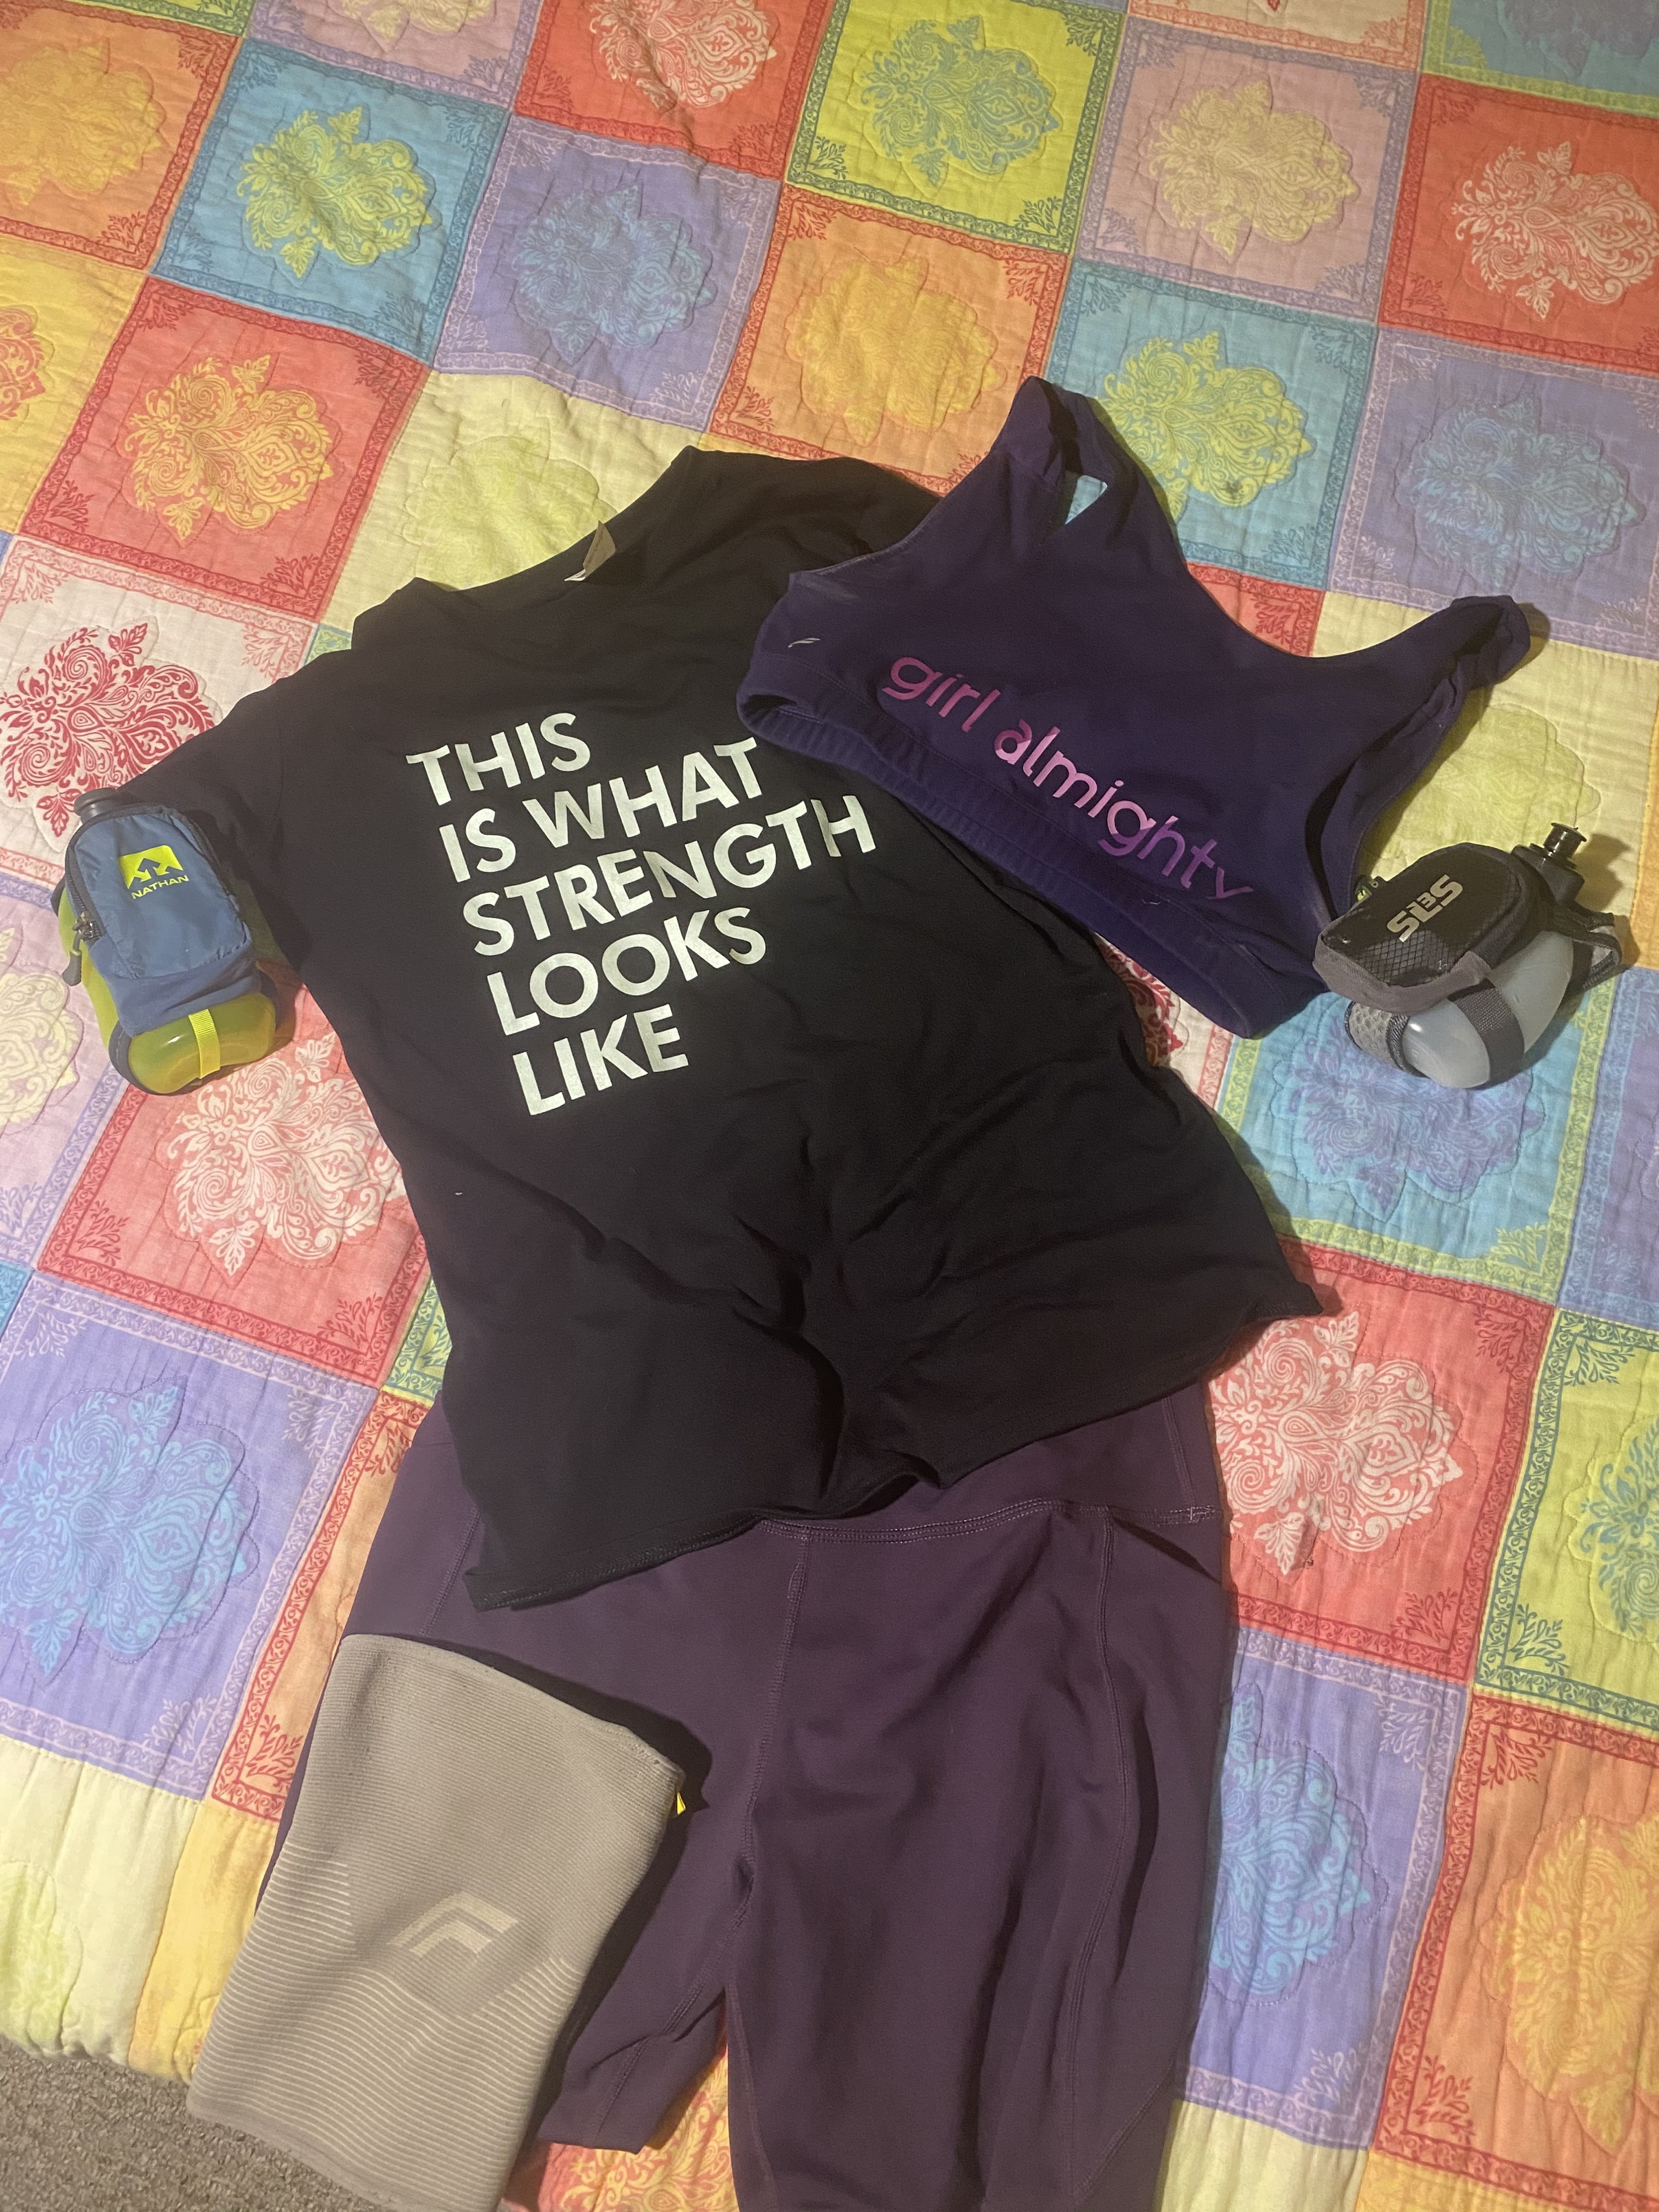 Amanda's race outfit: 2 handheld waterbottles, purple shorts, sports bra, & t-shirt reading THIS IS WHAT STRENGTH LOOKS LIKE